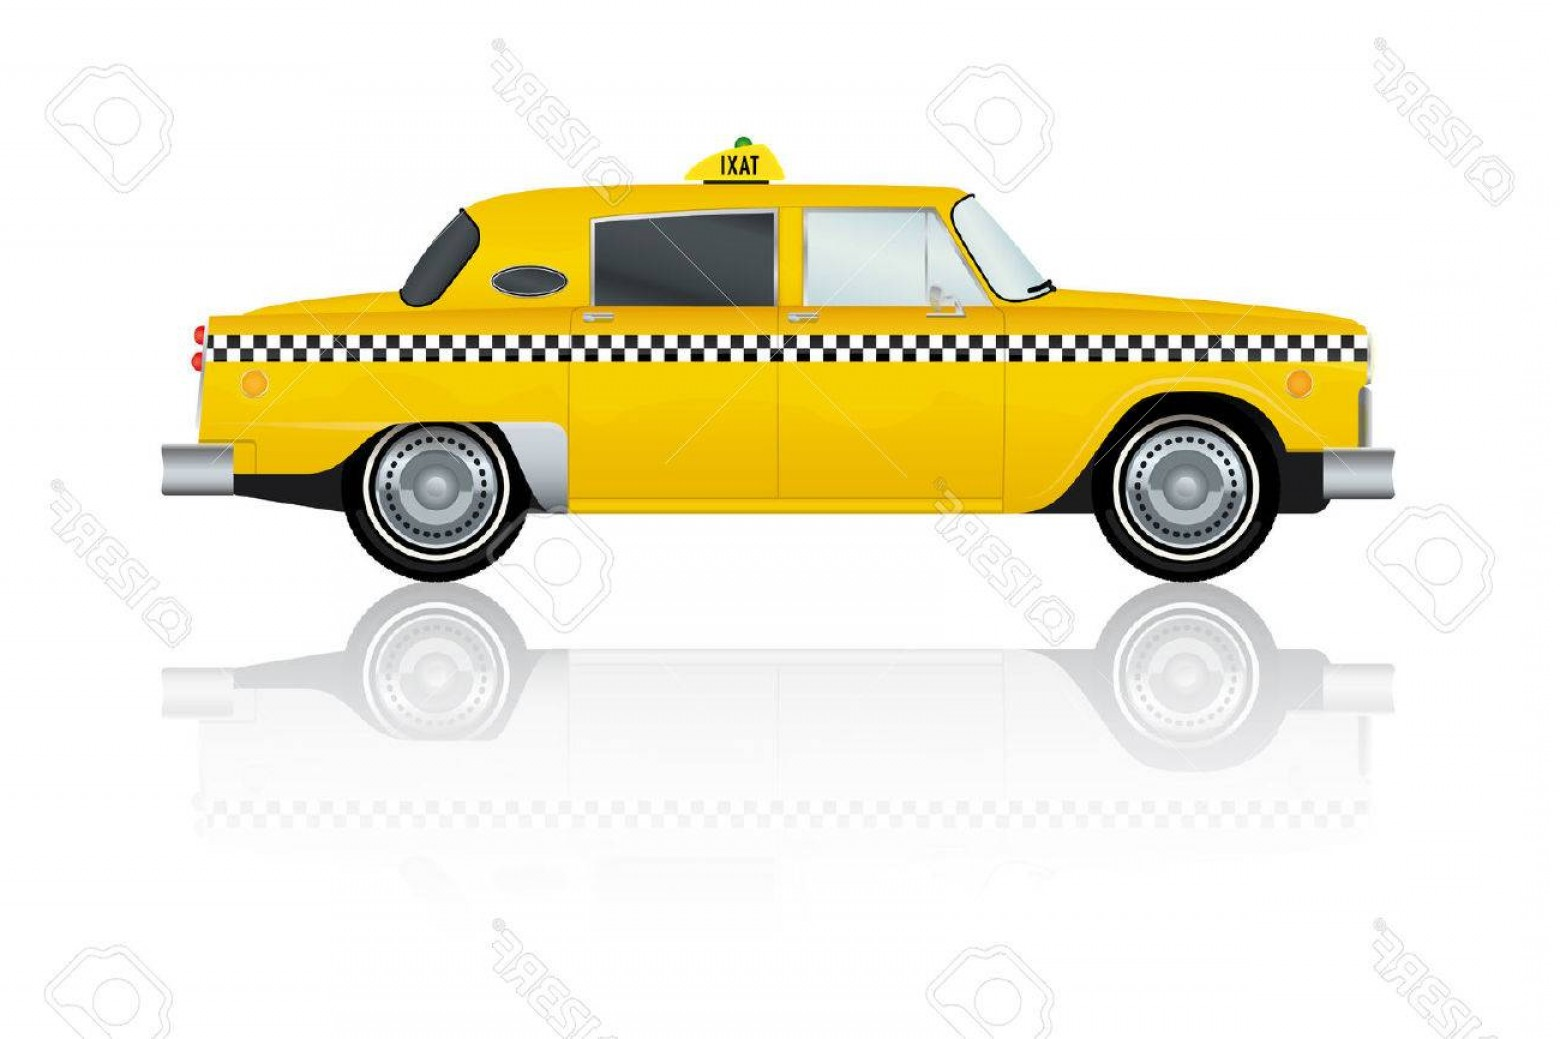 New York Taxi Cab Vector: Photostock Vector Vector Illustration Of Vintage Yellow New York Taxi Cab